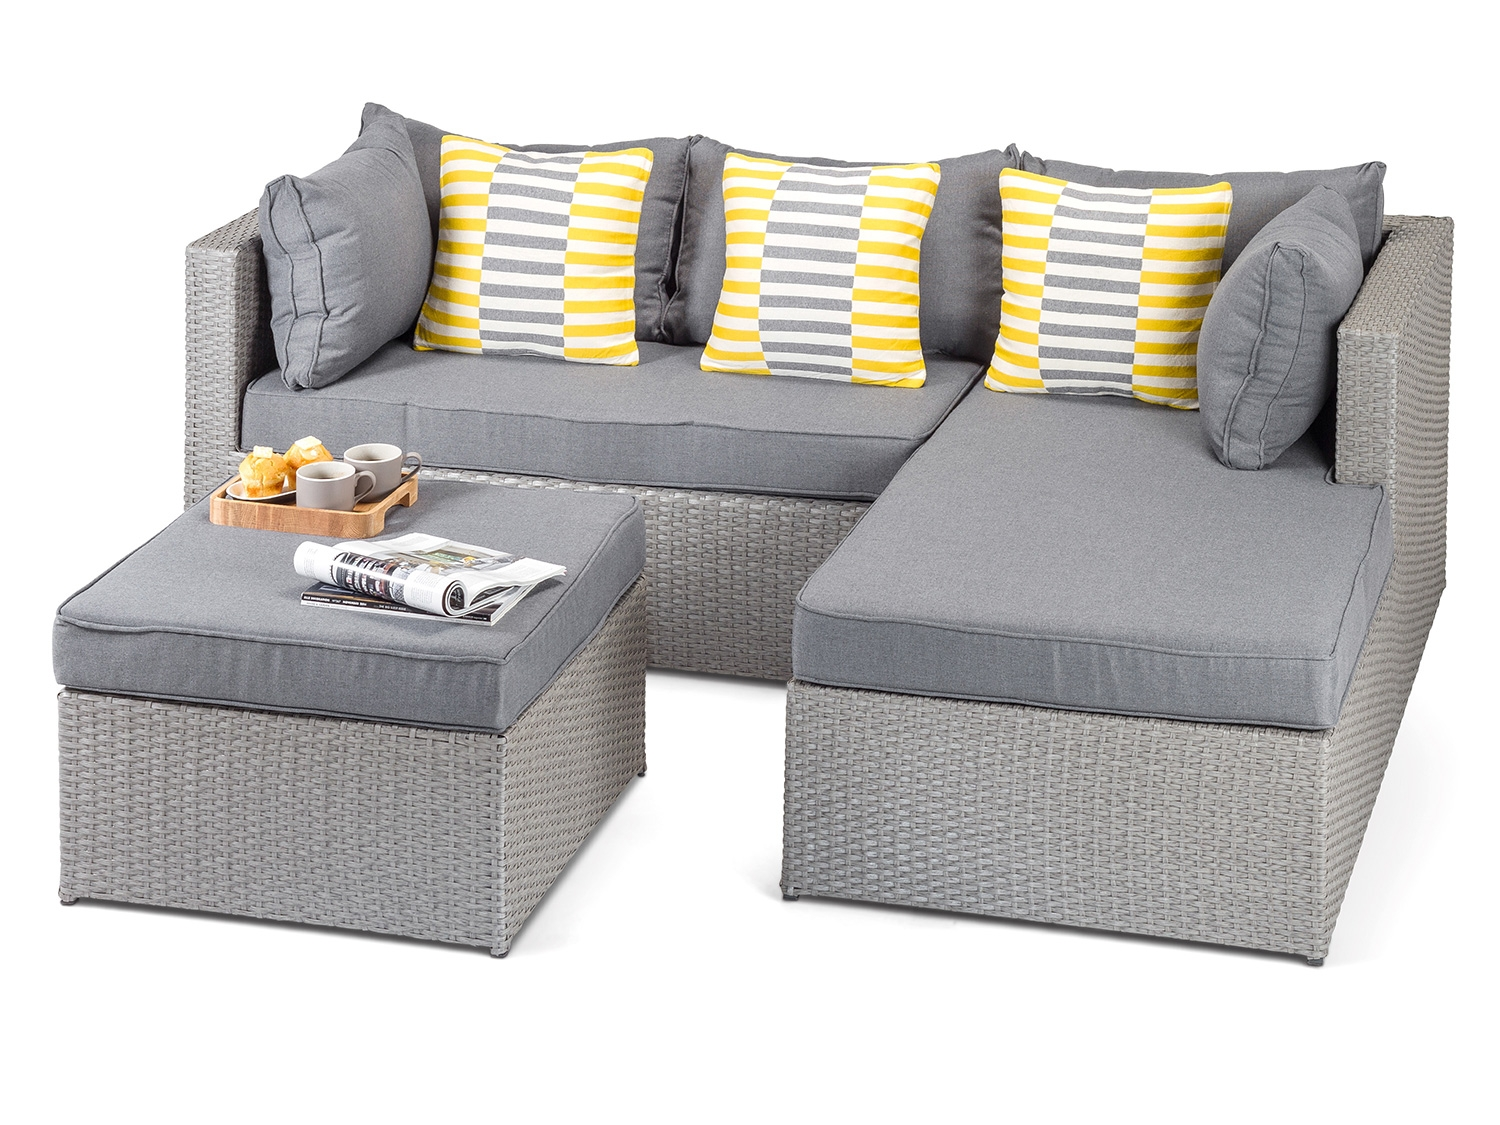 Fashionable grey rattan garden furniture furniture range - calabria grey outdoor  rattan furniture contemporary sofa set